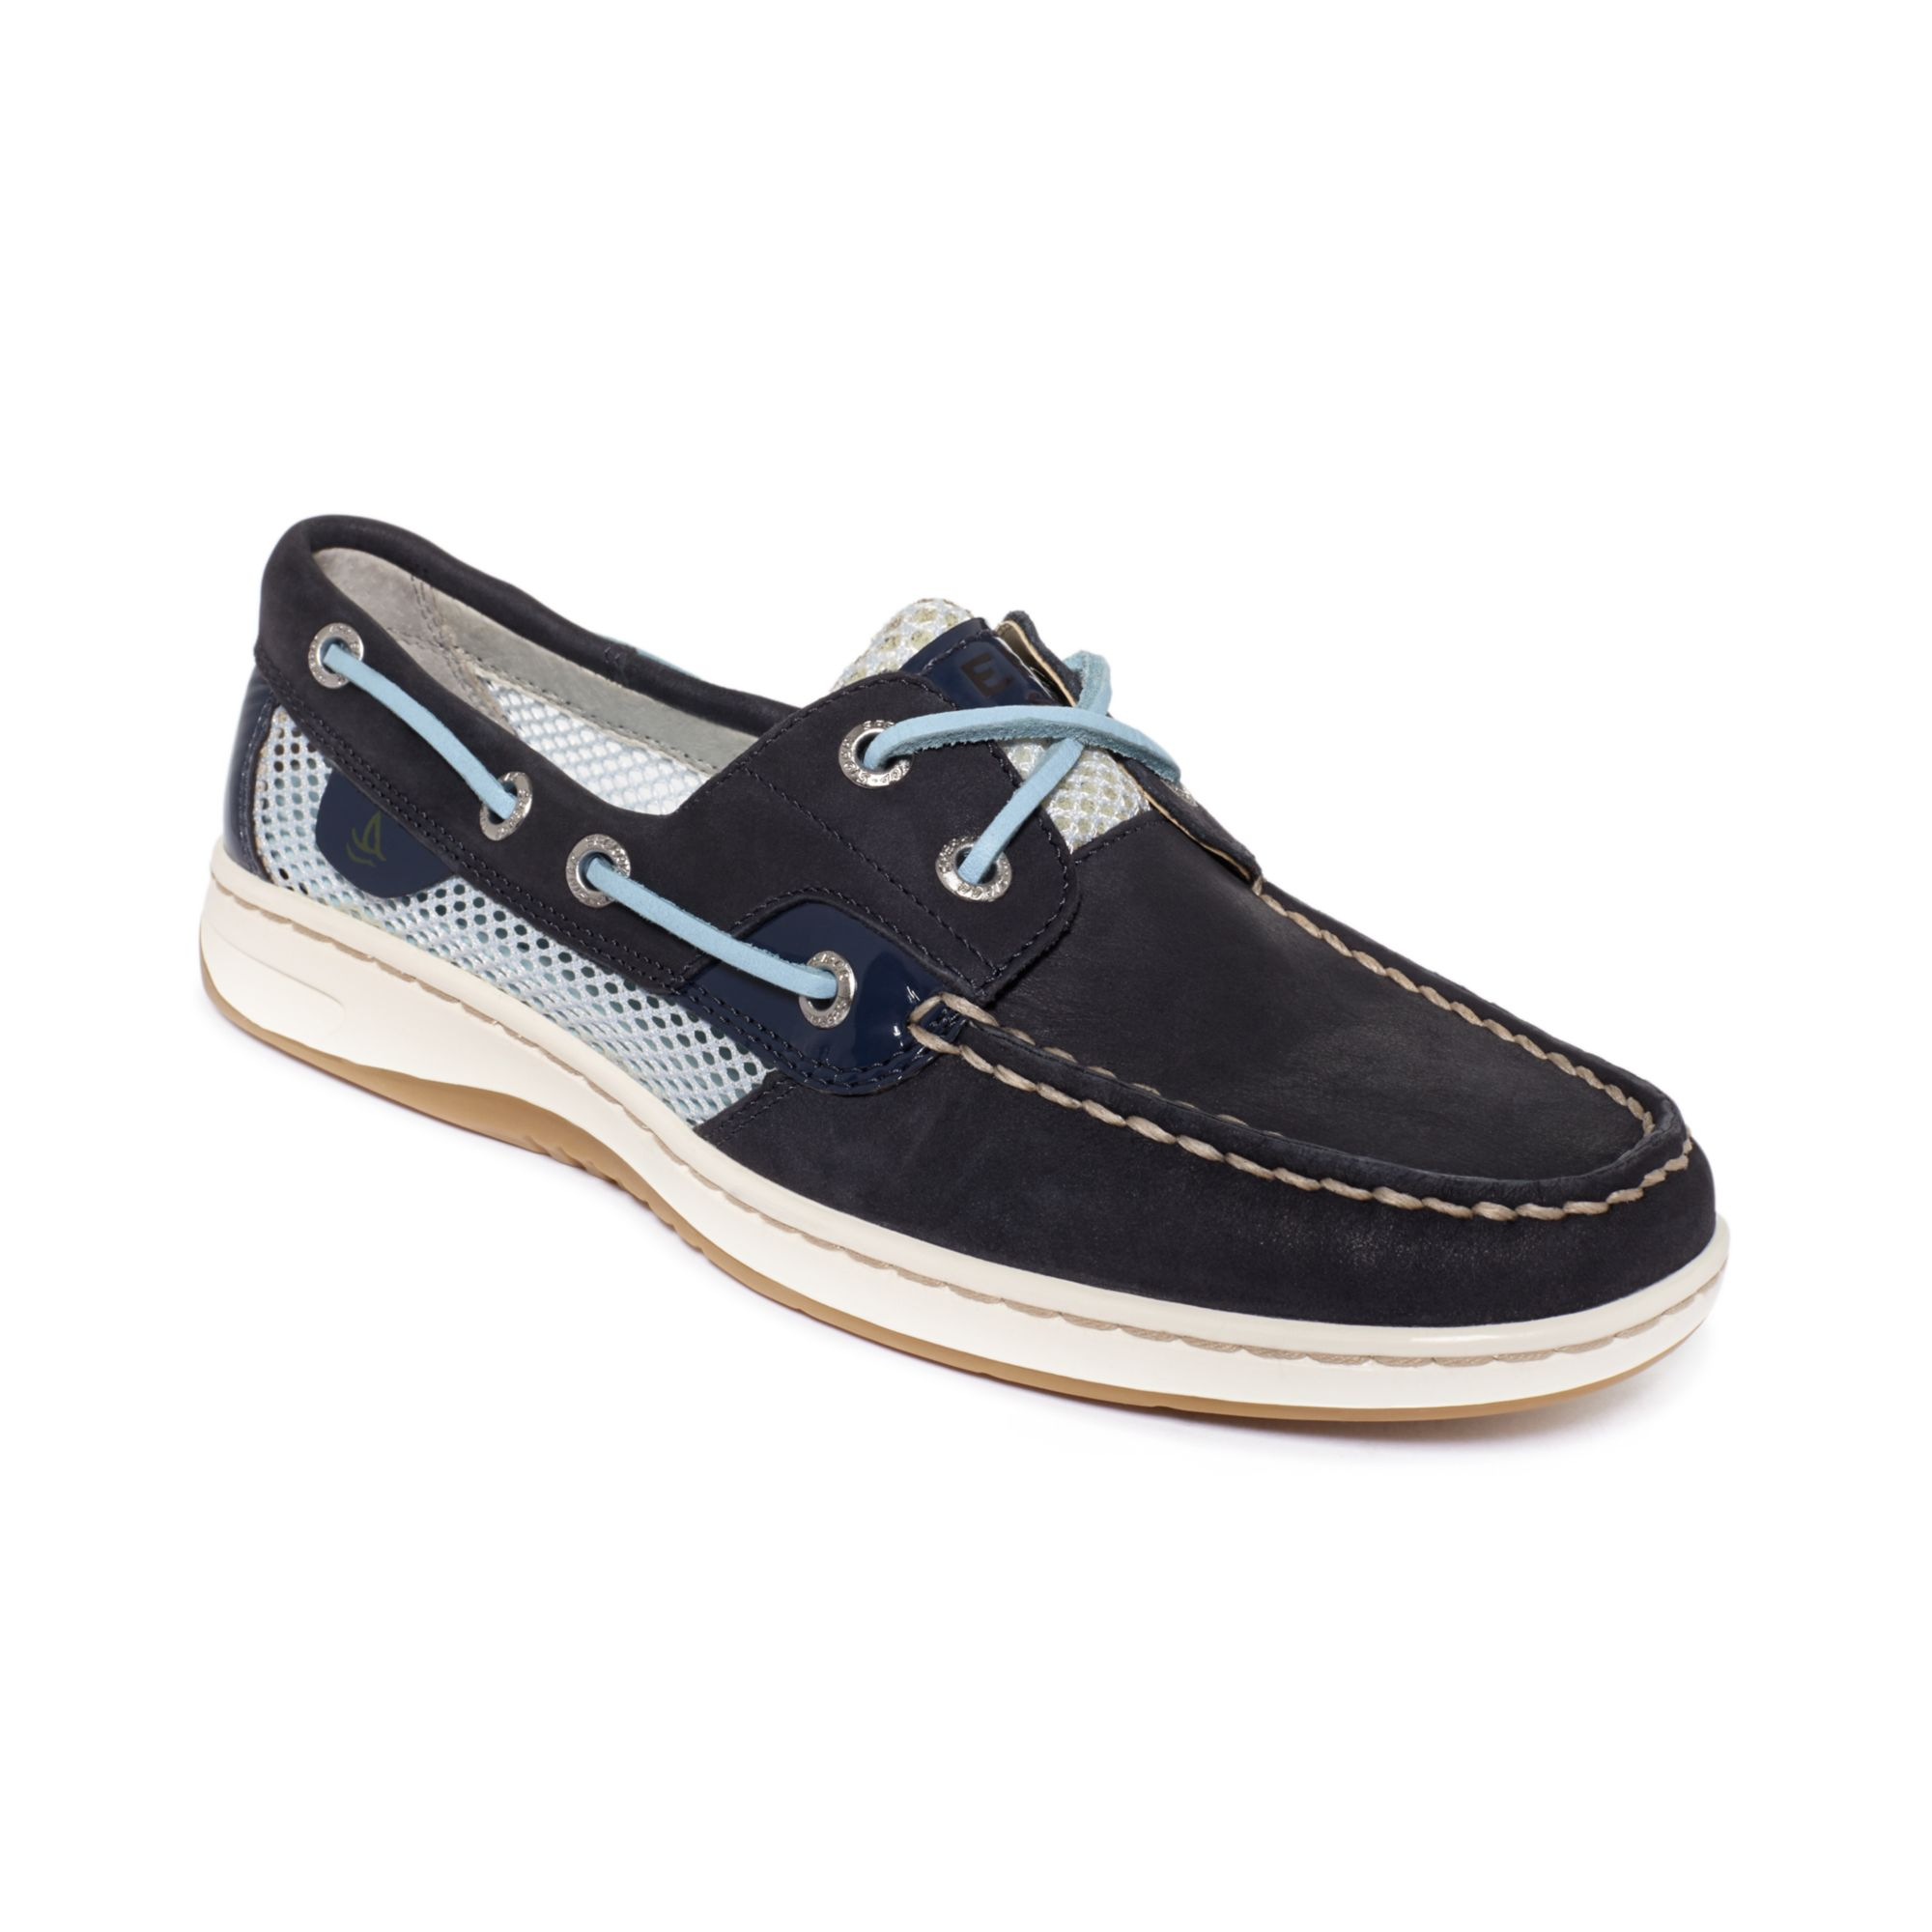 Blue Sperry Boat Shoes